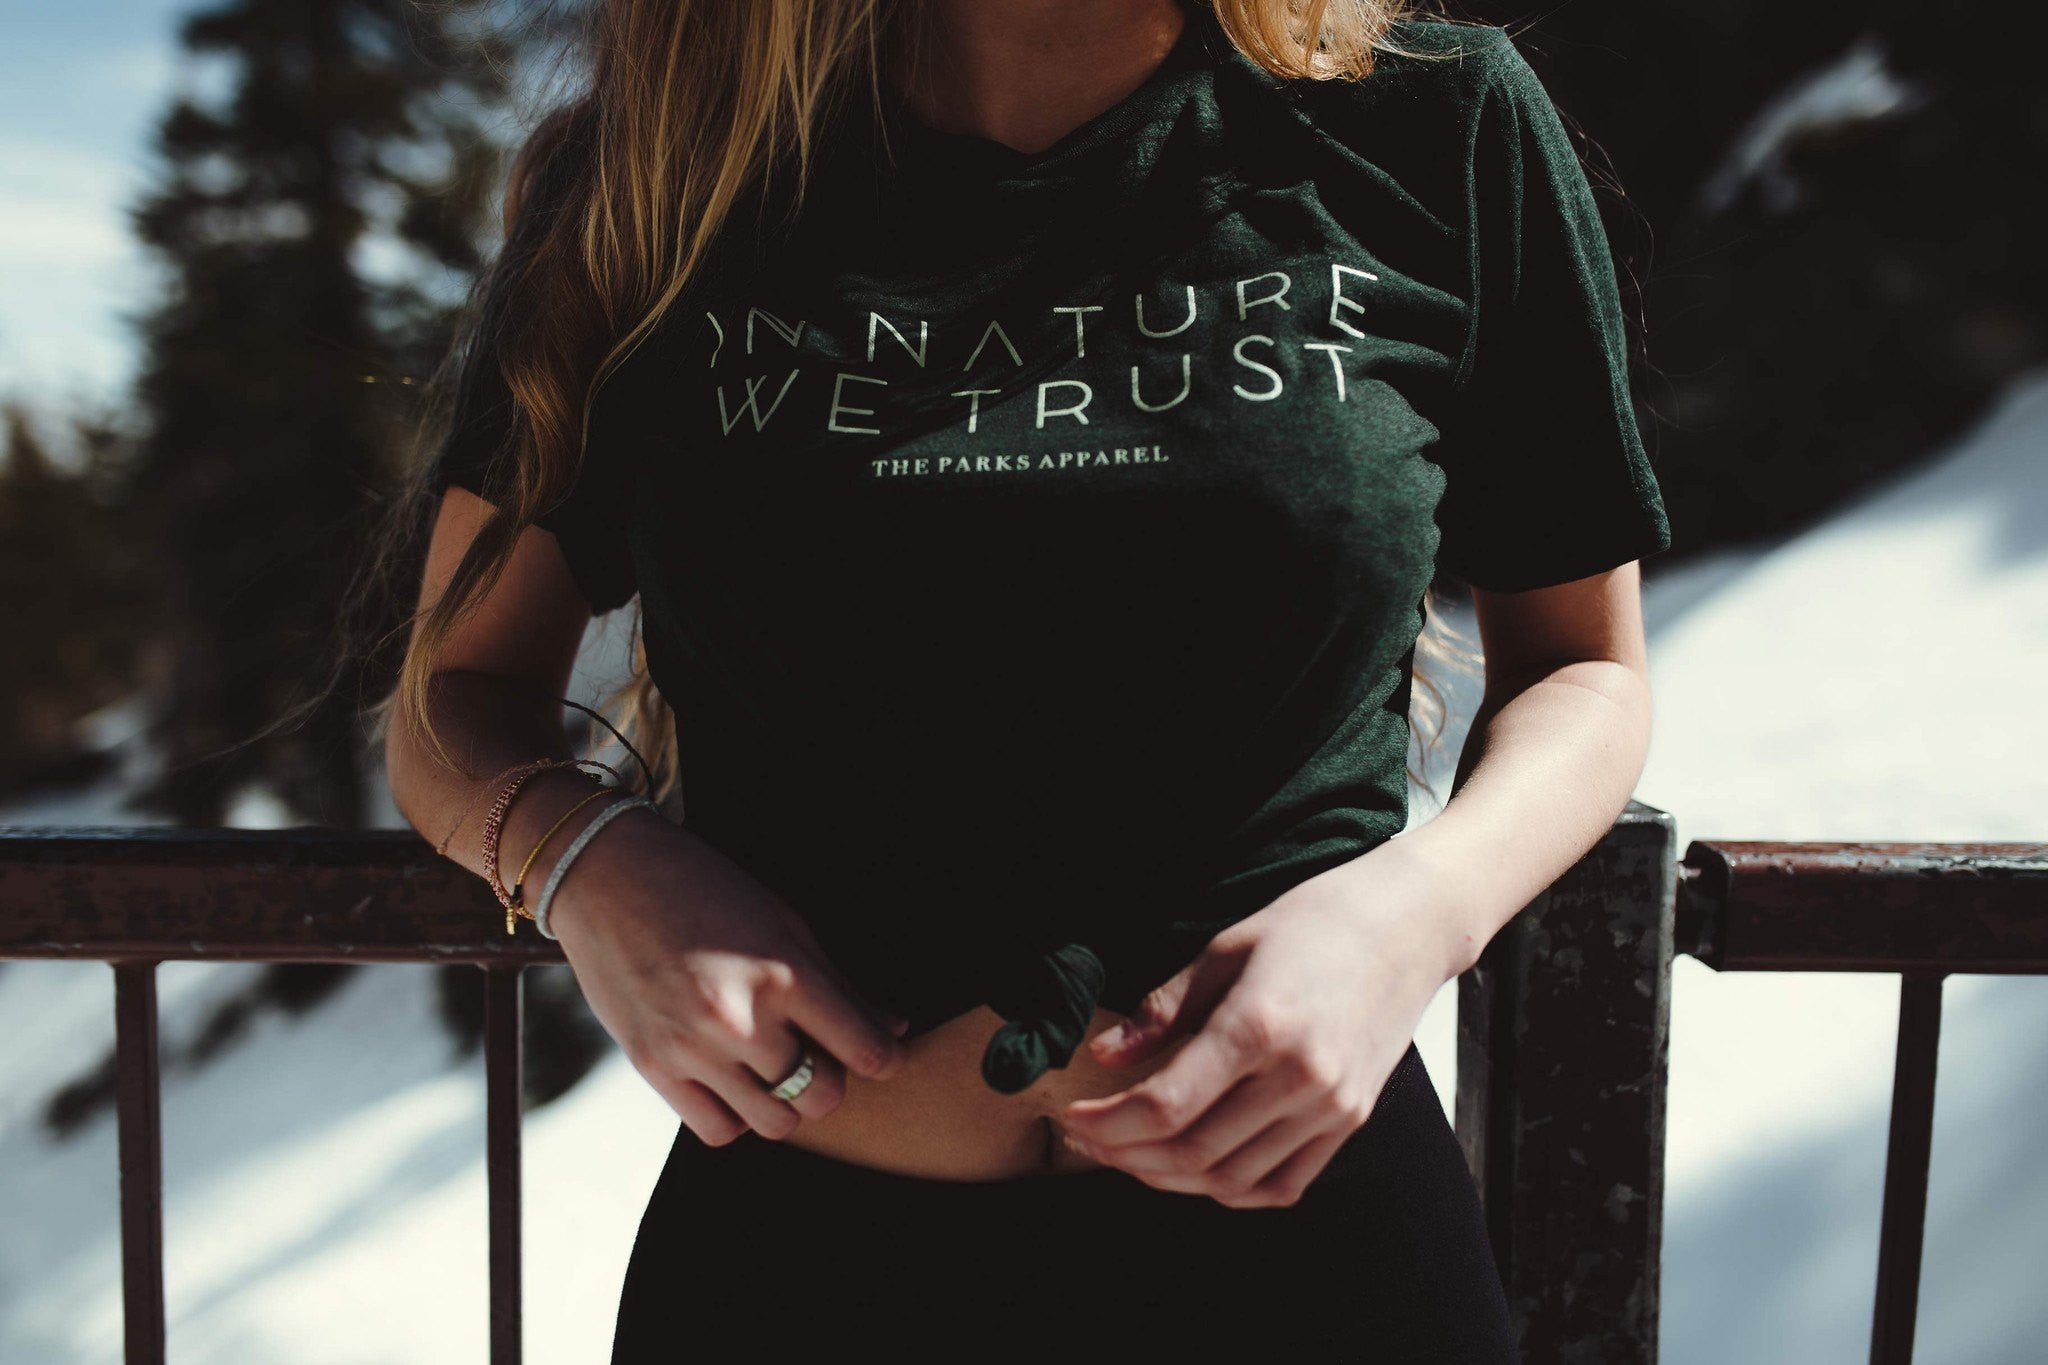 The Parks In Nature We Trust Tee